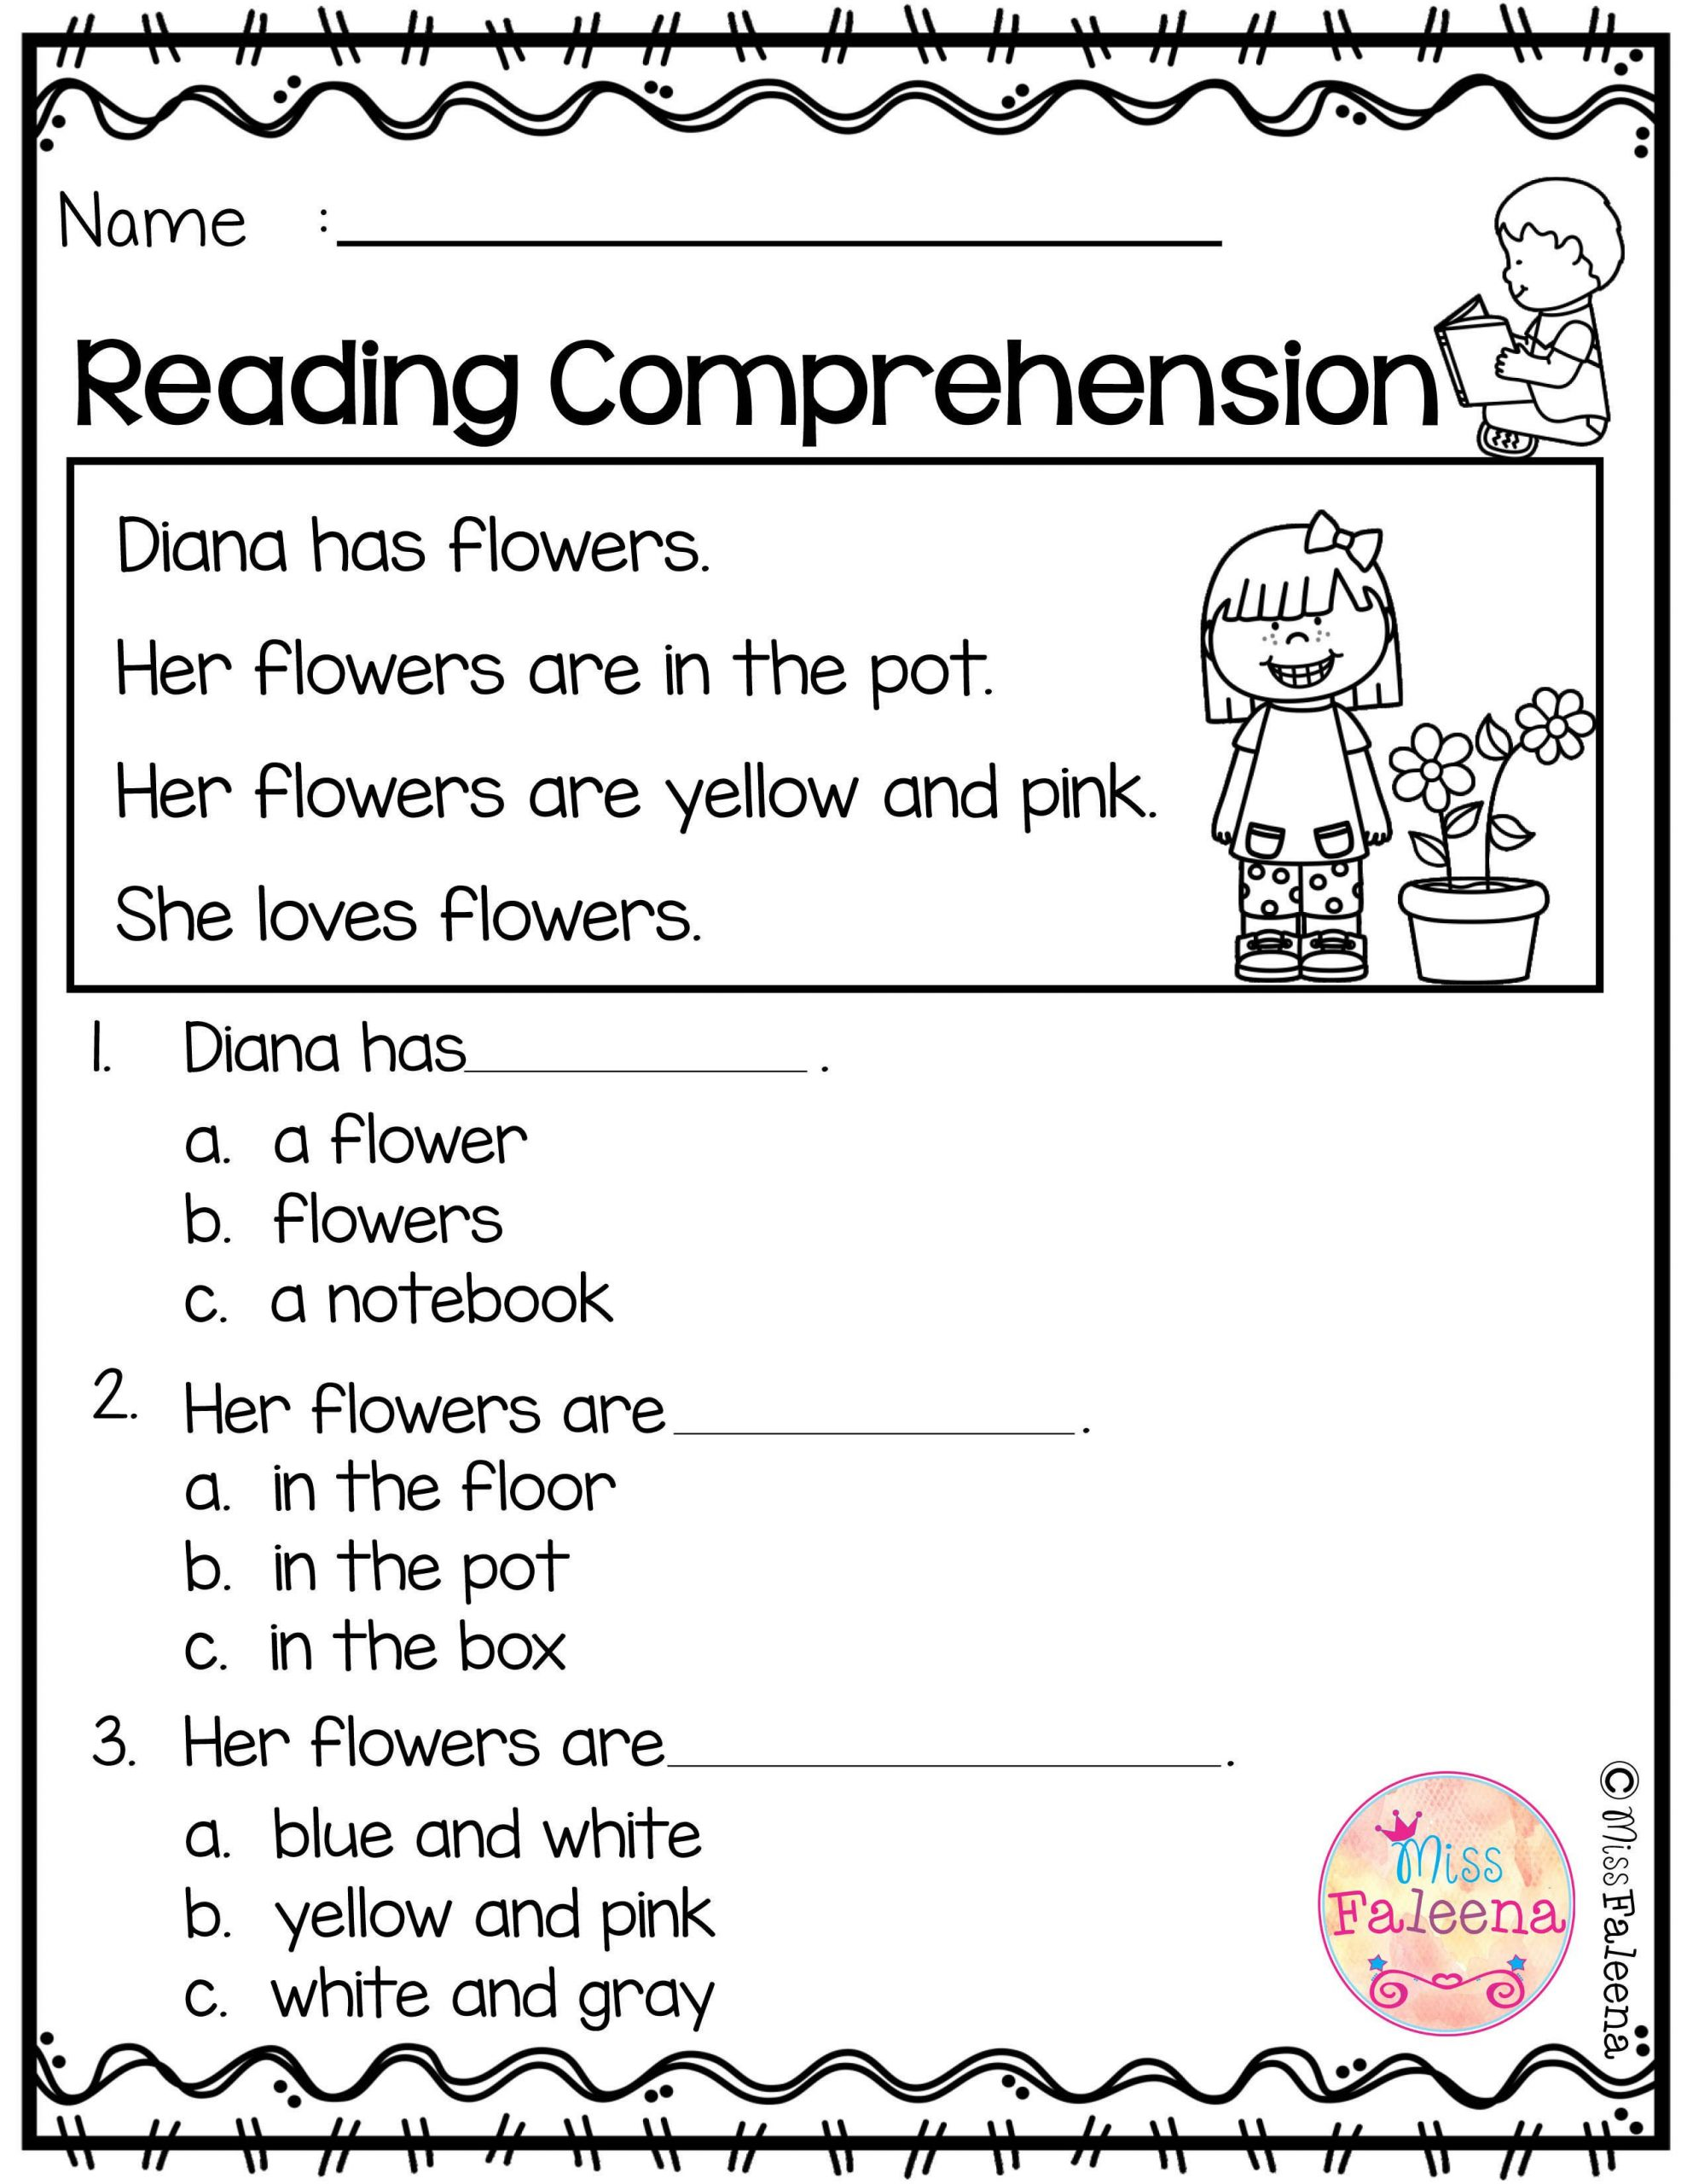 Kinder Reading Comprehension Worksheets Free Reading Prehension